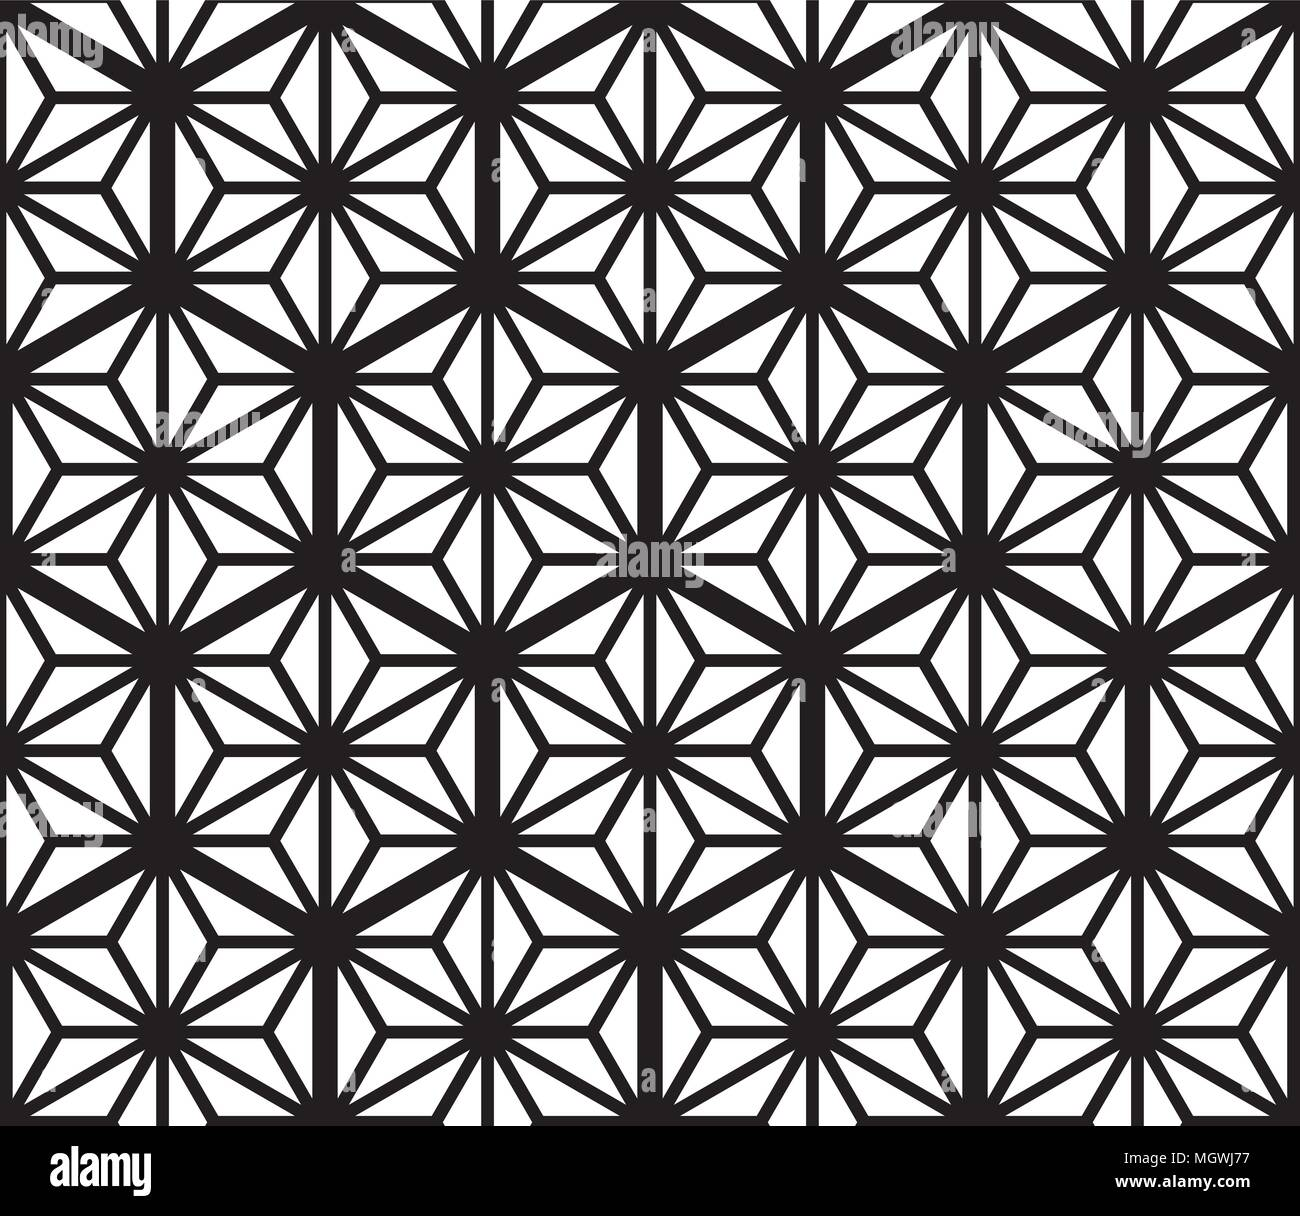 Seamless Geometric Pattern Based On Traditional Japanese Kumiko Patterns Grid Of Hexagons Of Large Thickness Stock Vector Image Art Alamy